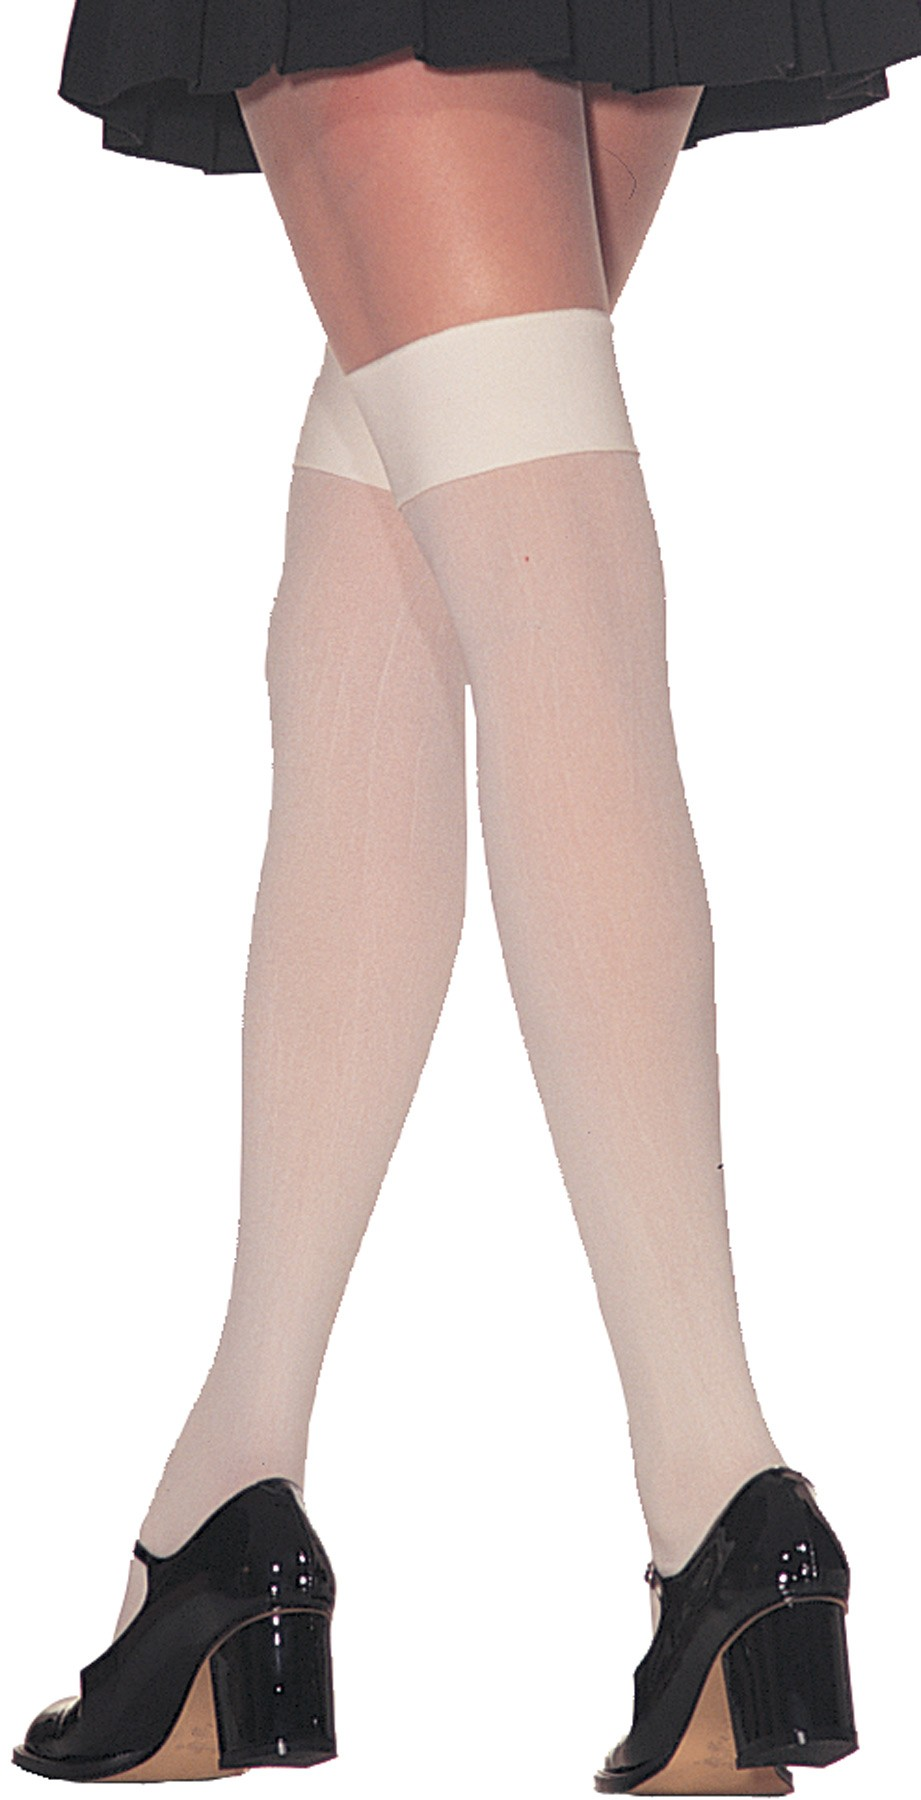 fa51d768d6d Thigh High Opaque Nylon White Stockings Adult